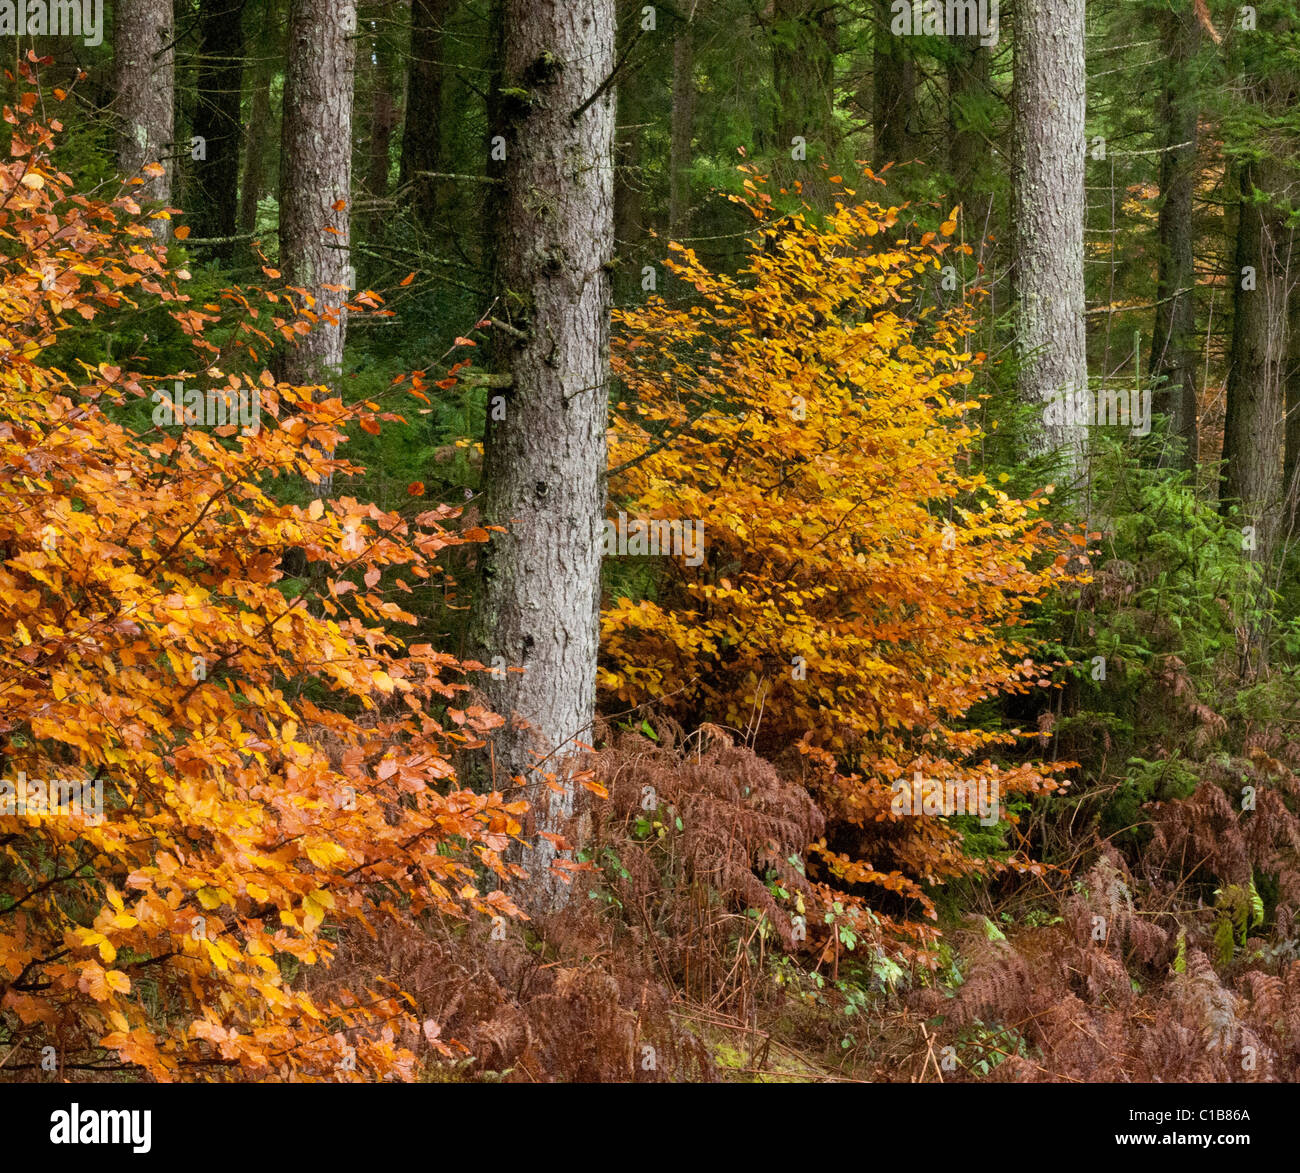 Rich orange browns of autumn beech leaves at foot of trunks of Spruce plantation - Stock Image